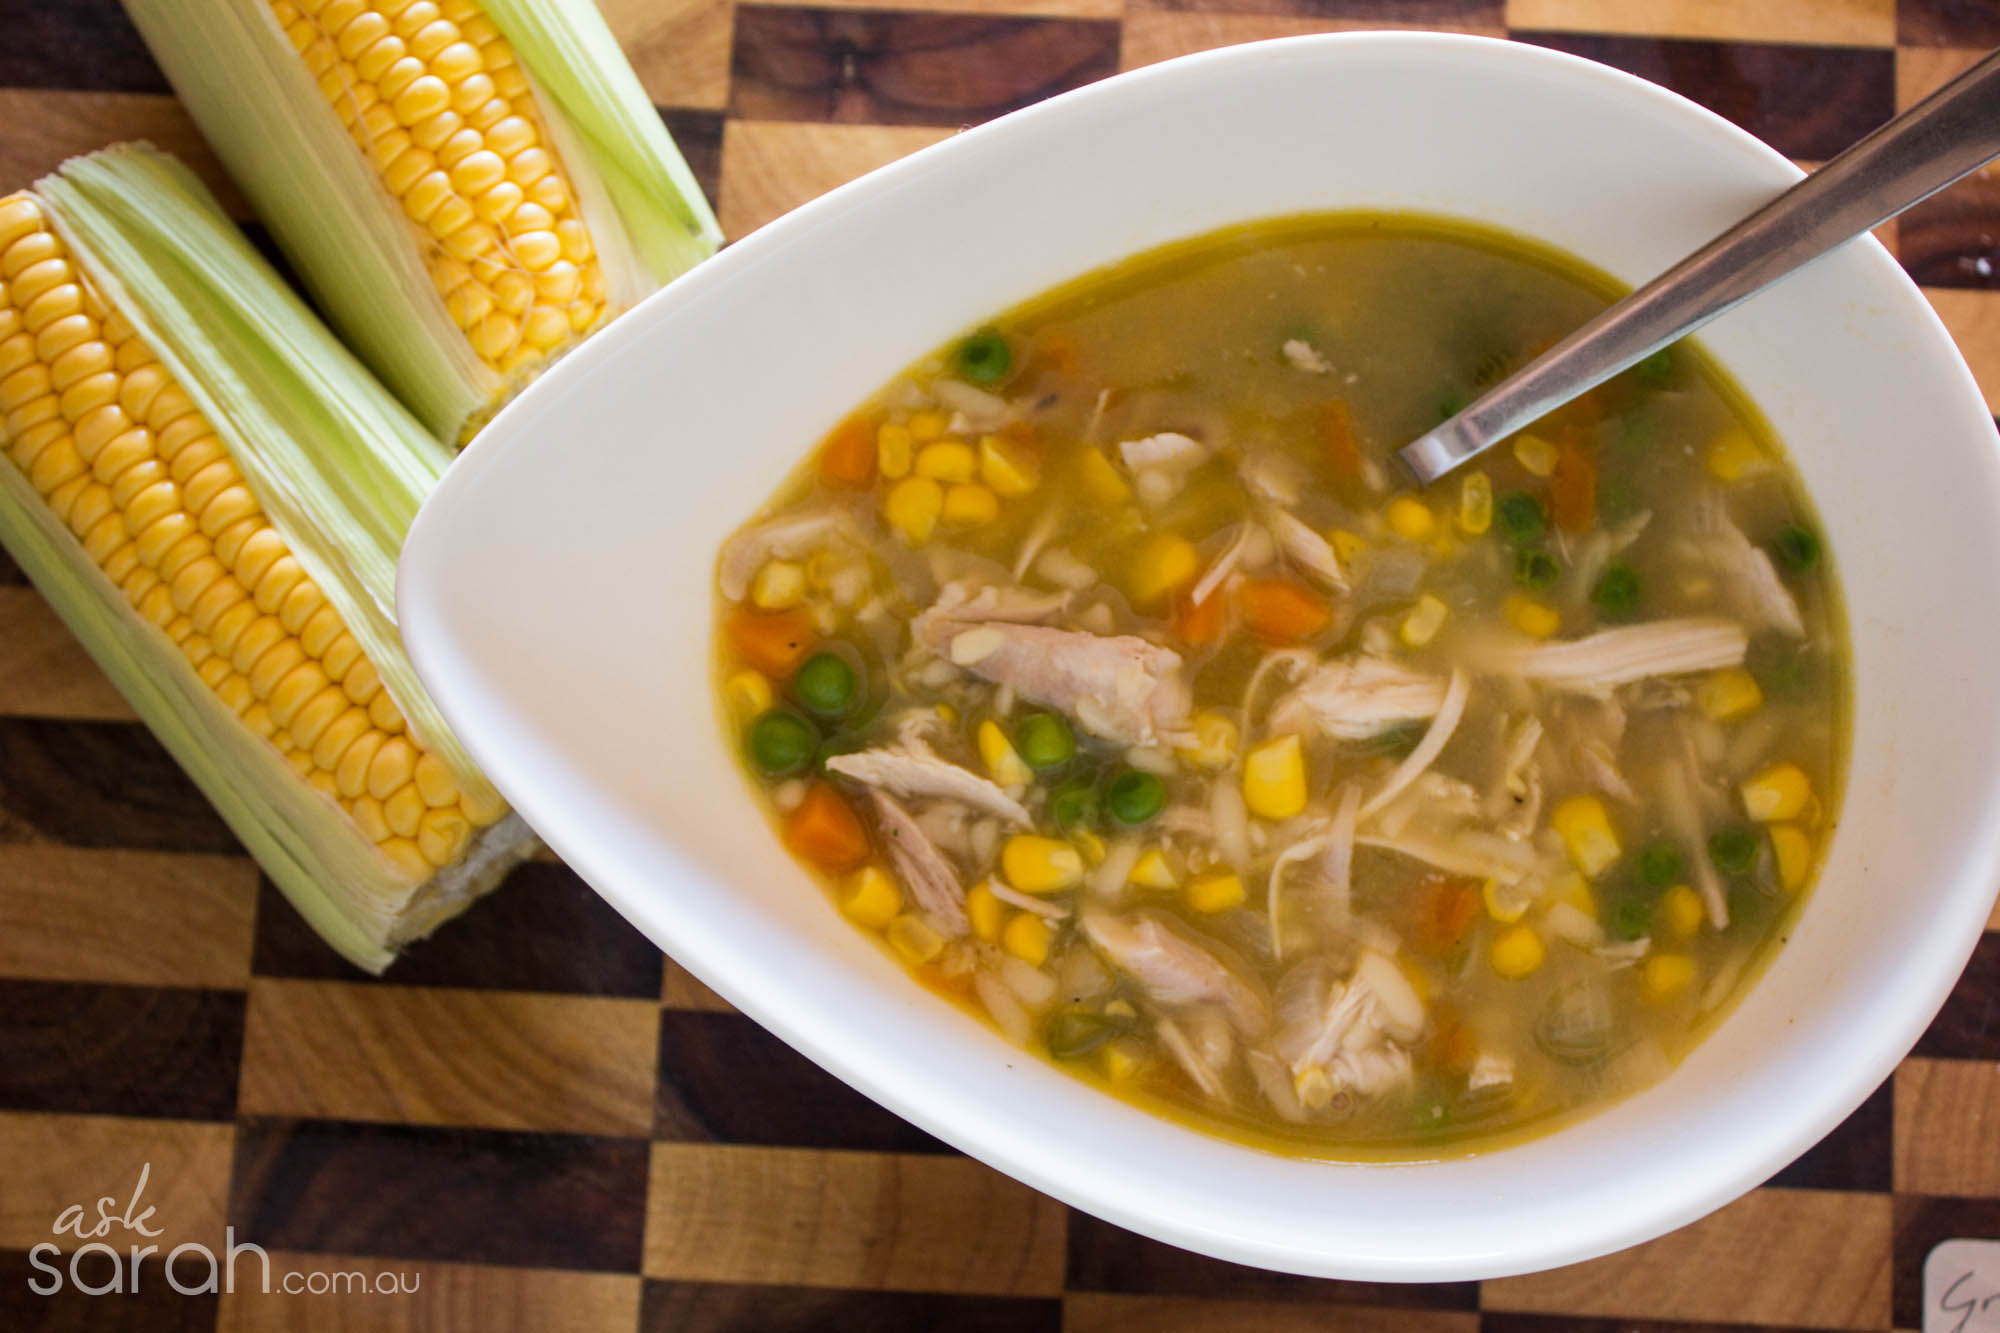 Recipe: Corn & Chicken Noodle Soup {Flexible Cooking, Vegetarian Friendly}